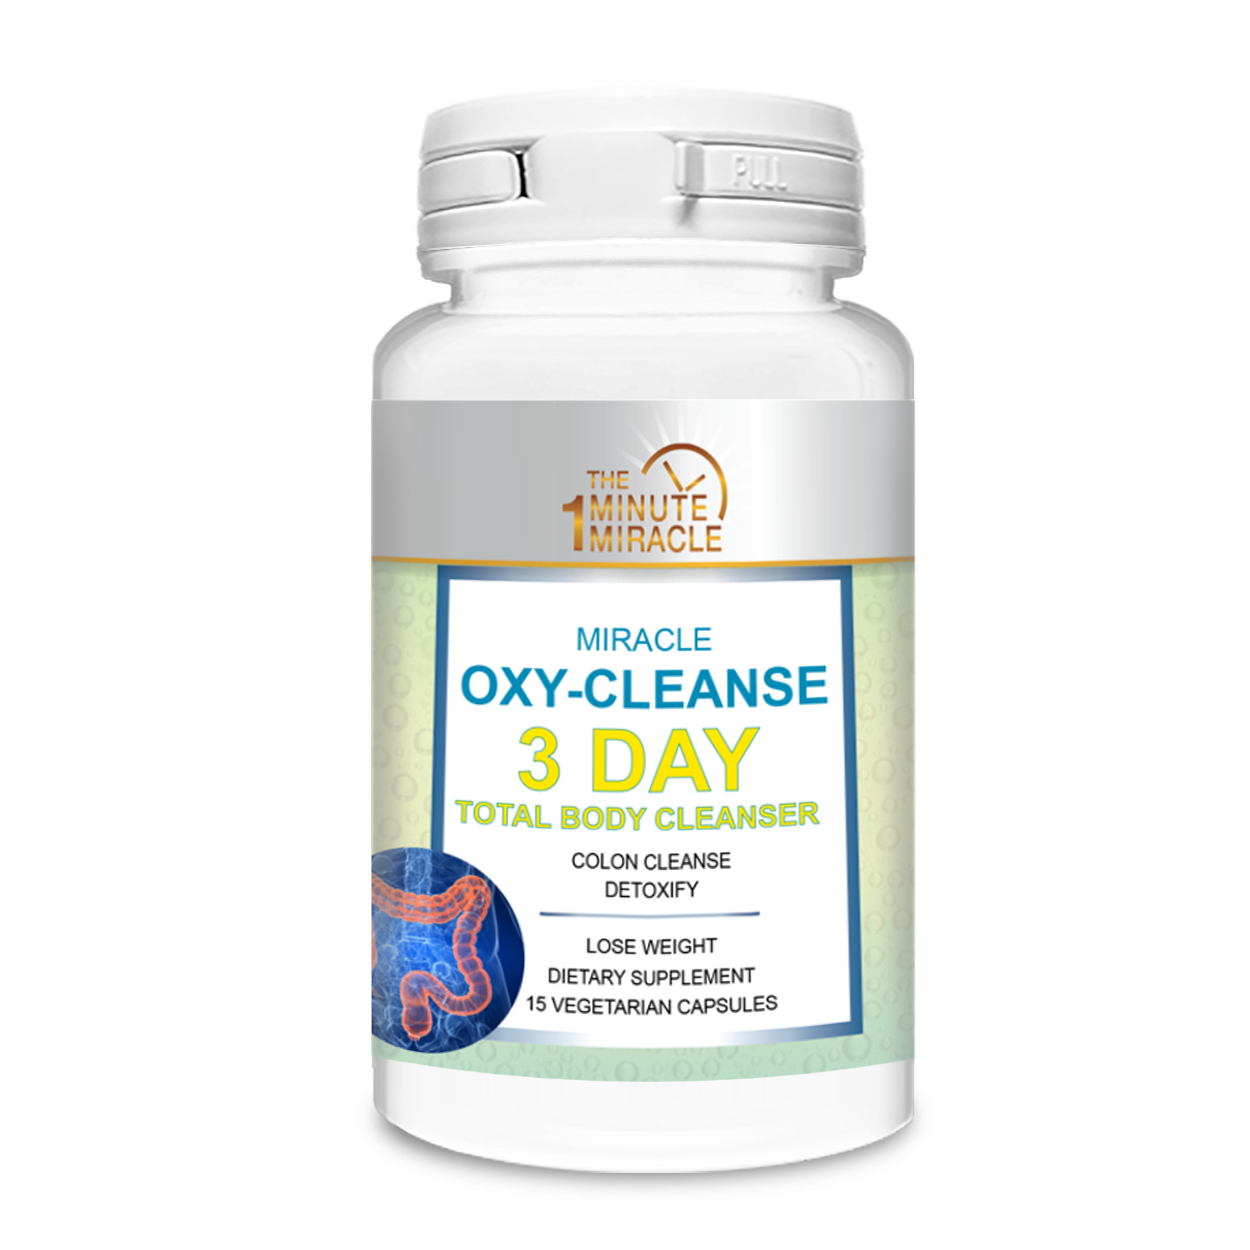 3 Day Total Body Cleanser - Miracle Oxy-Cleanse Detox and Colon Cleanser